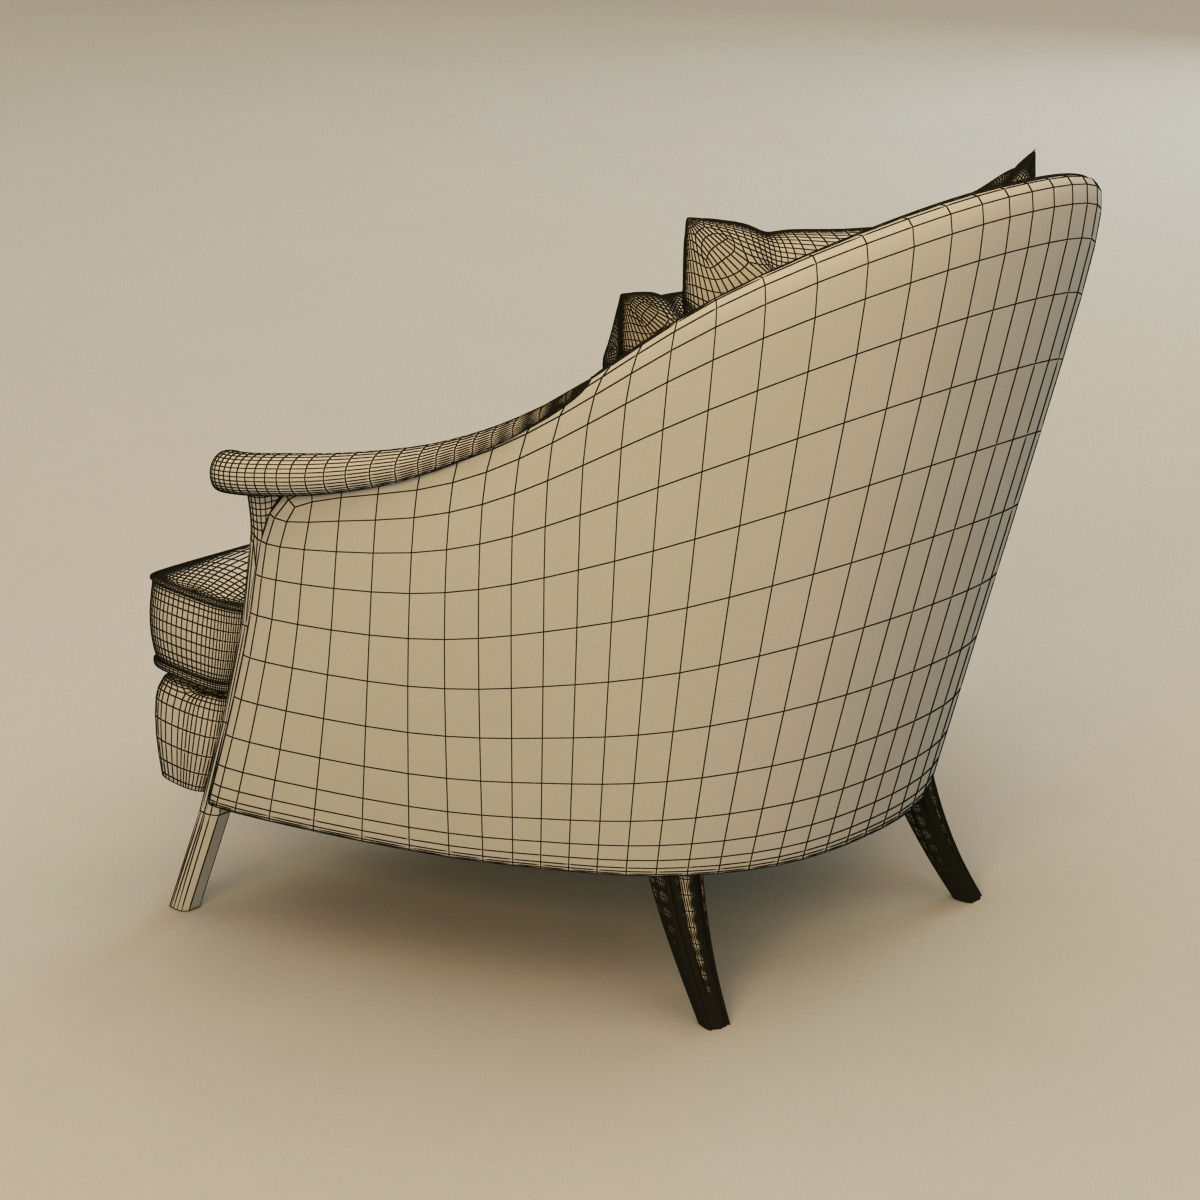 CHRISTOPHER GUY POLTRONA armchair 3D Model MAX OBJ 3DS FBX ...